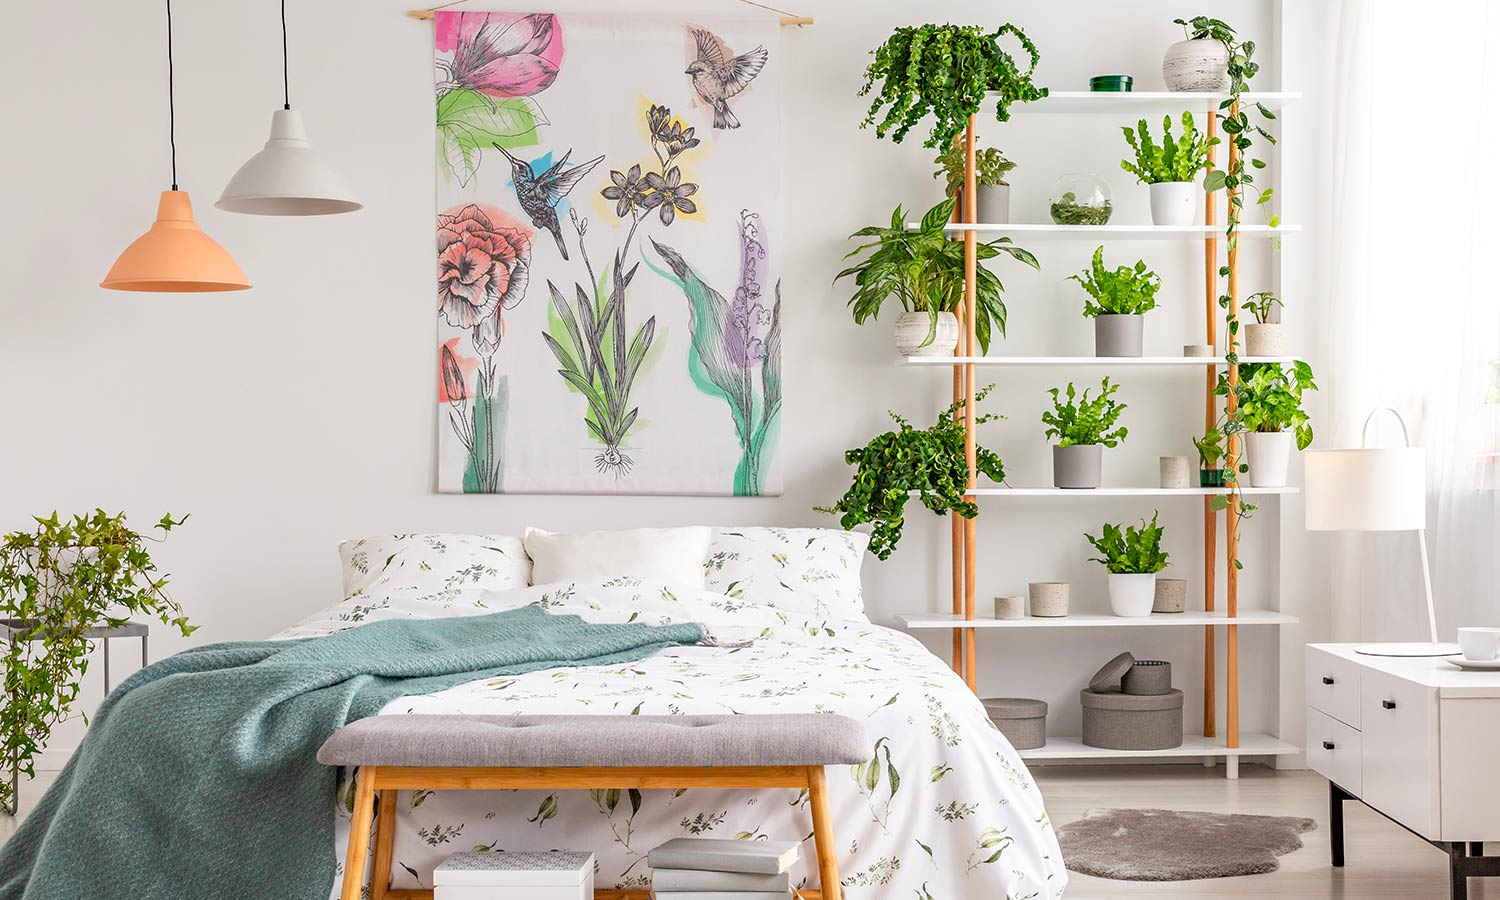 guest bedroom with plants